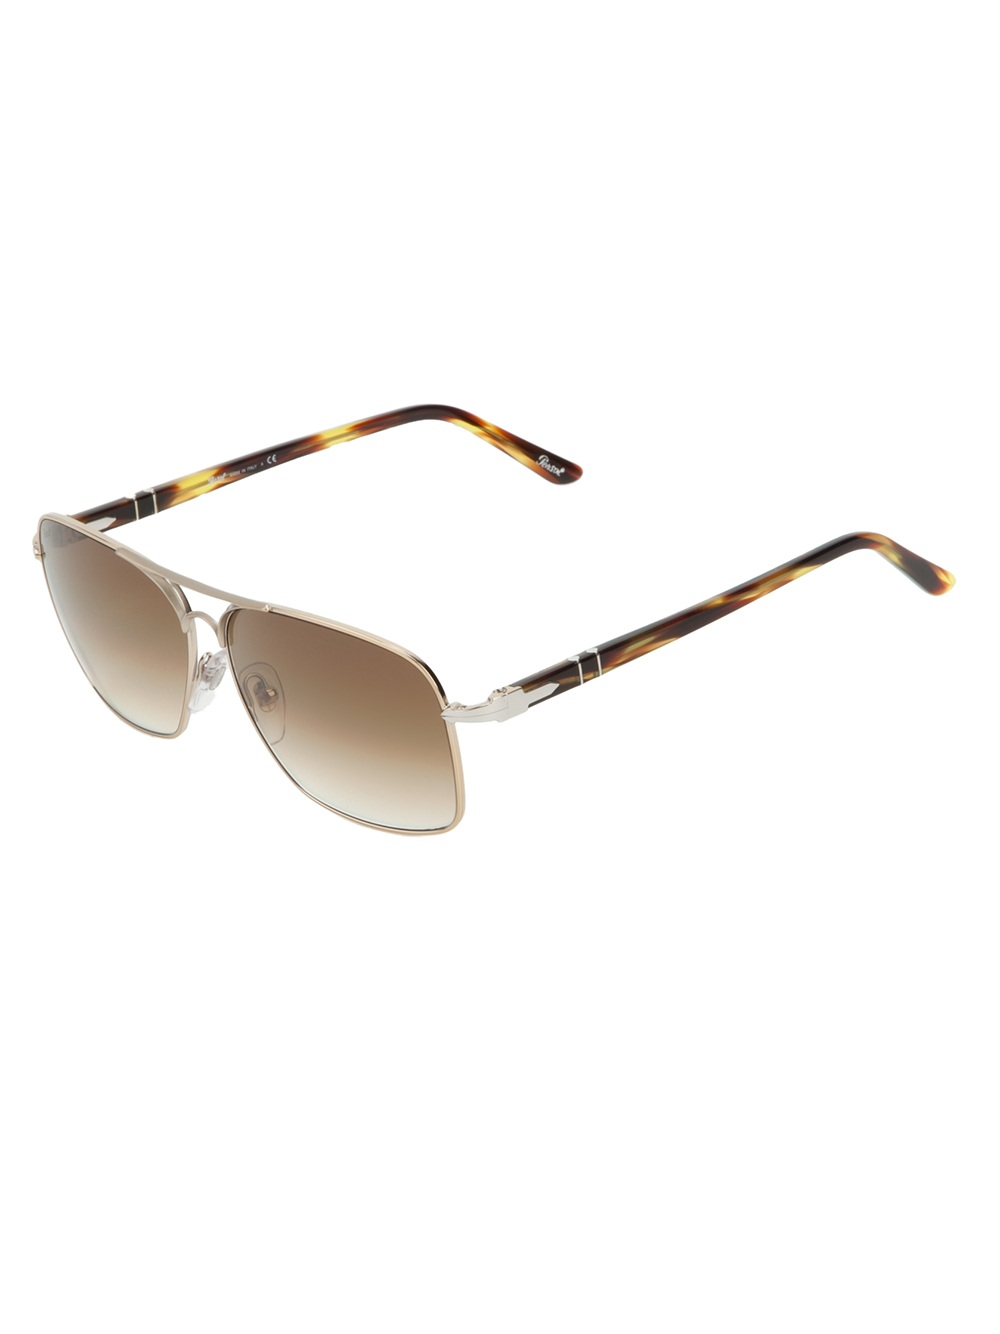 7a894bf26c70f Persol Square Frame Sunglasses in Metallic for Men - Lyst